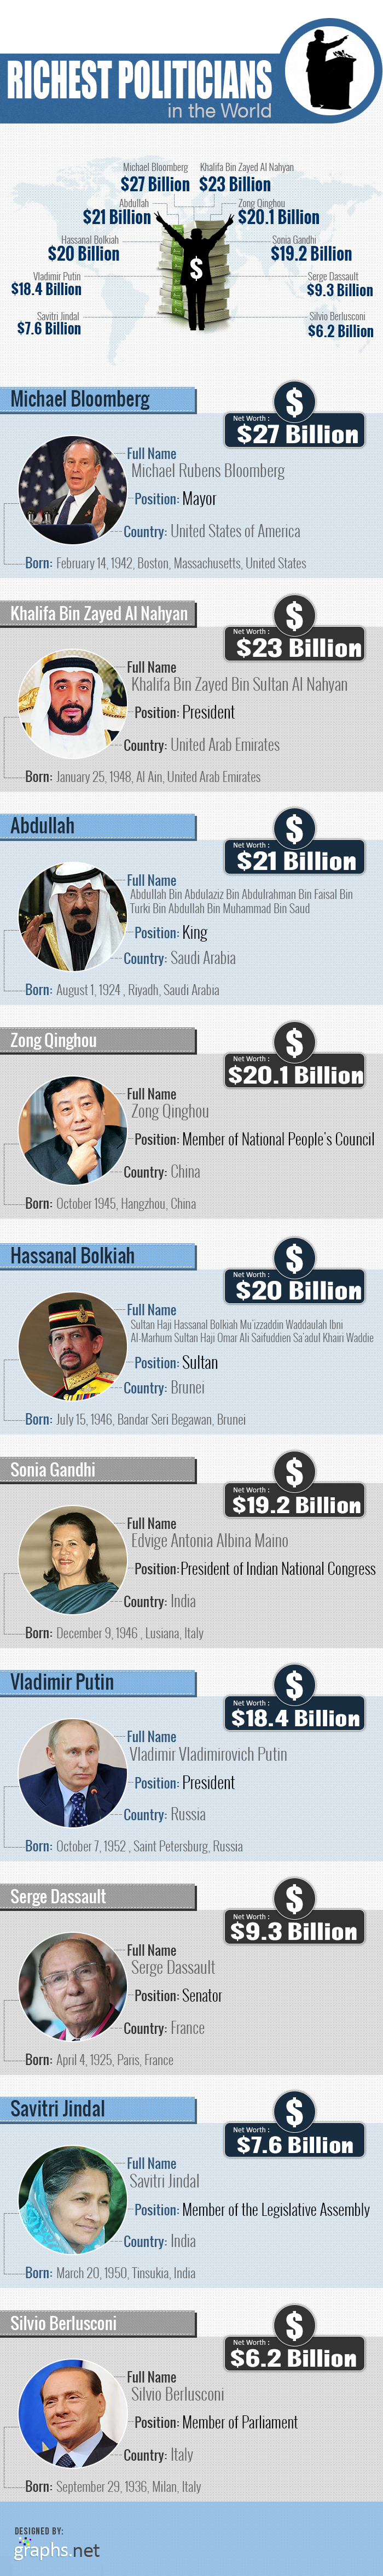 Worlds Richest Politicians